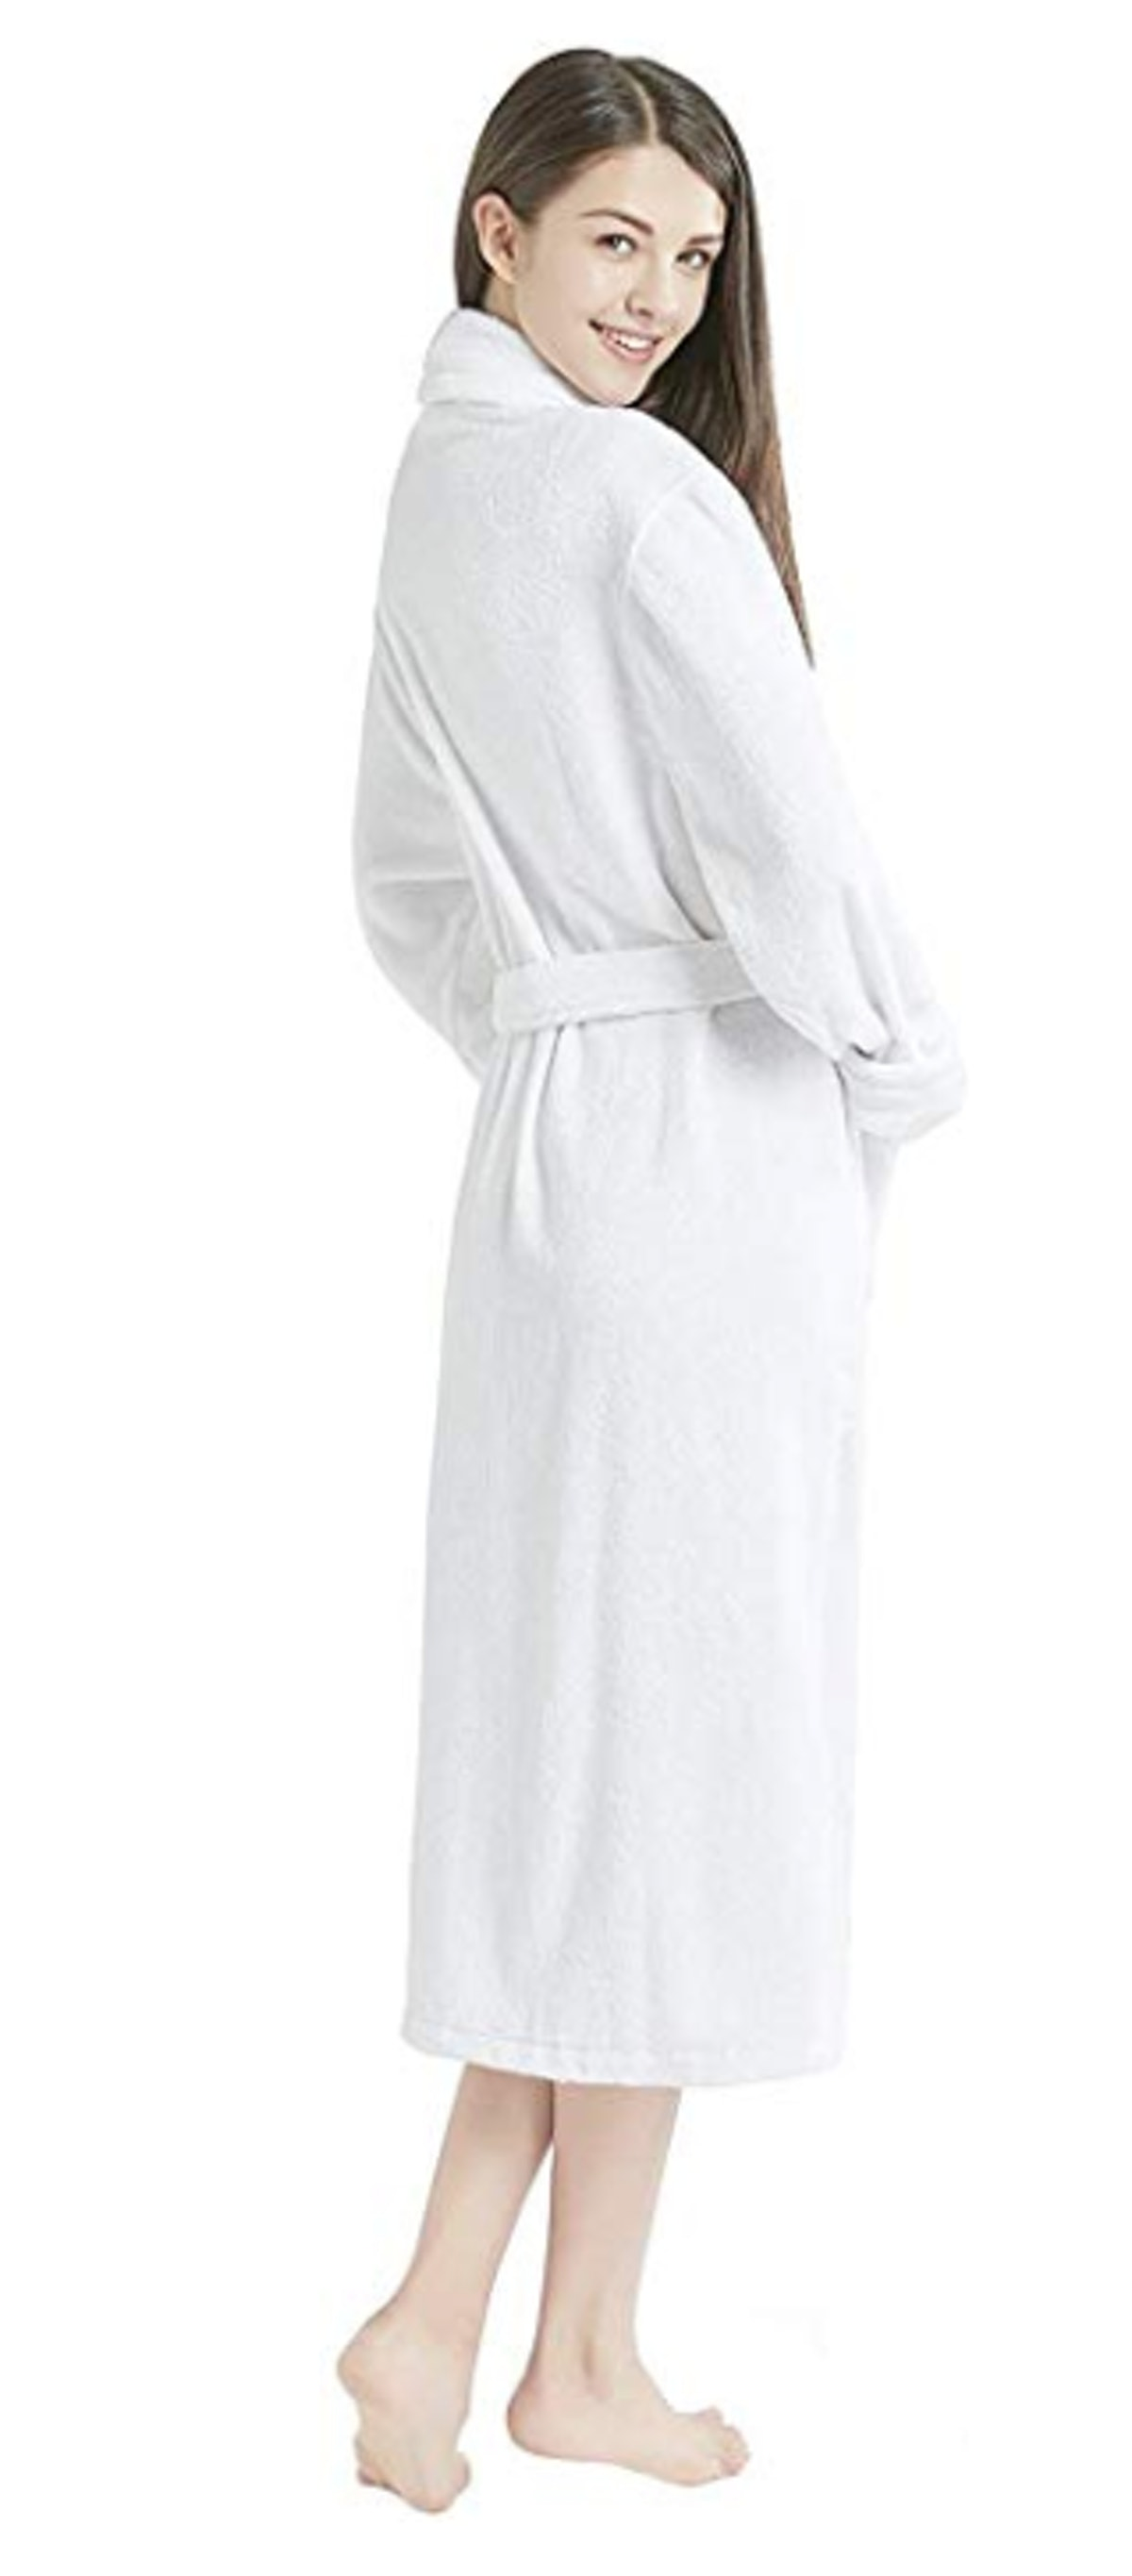 Ink+Ivy Terry Cloth Robes for Women, 100% Cotton Bath Robe Women's Towel Robe